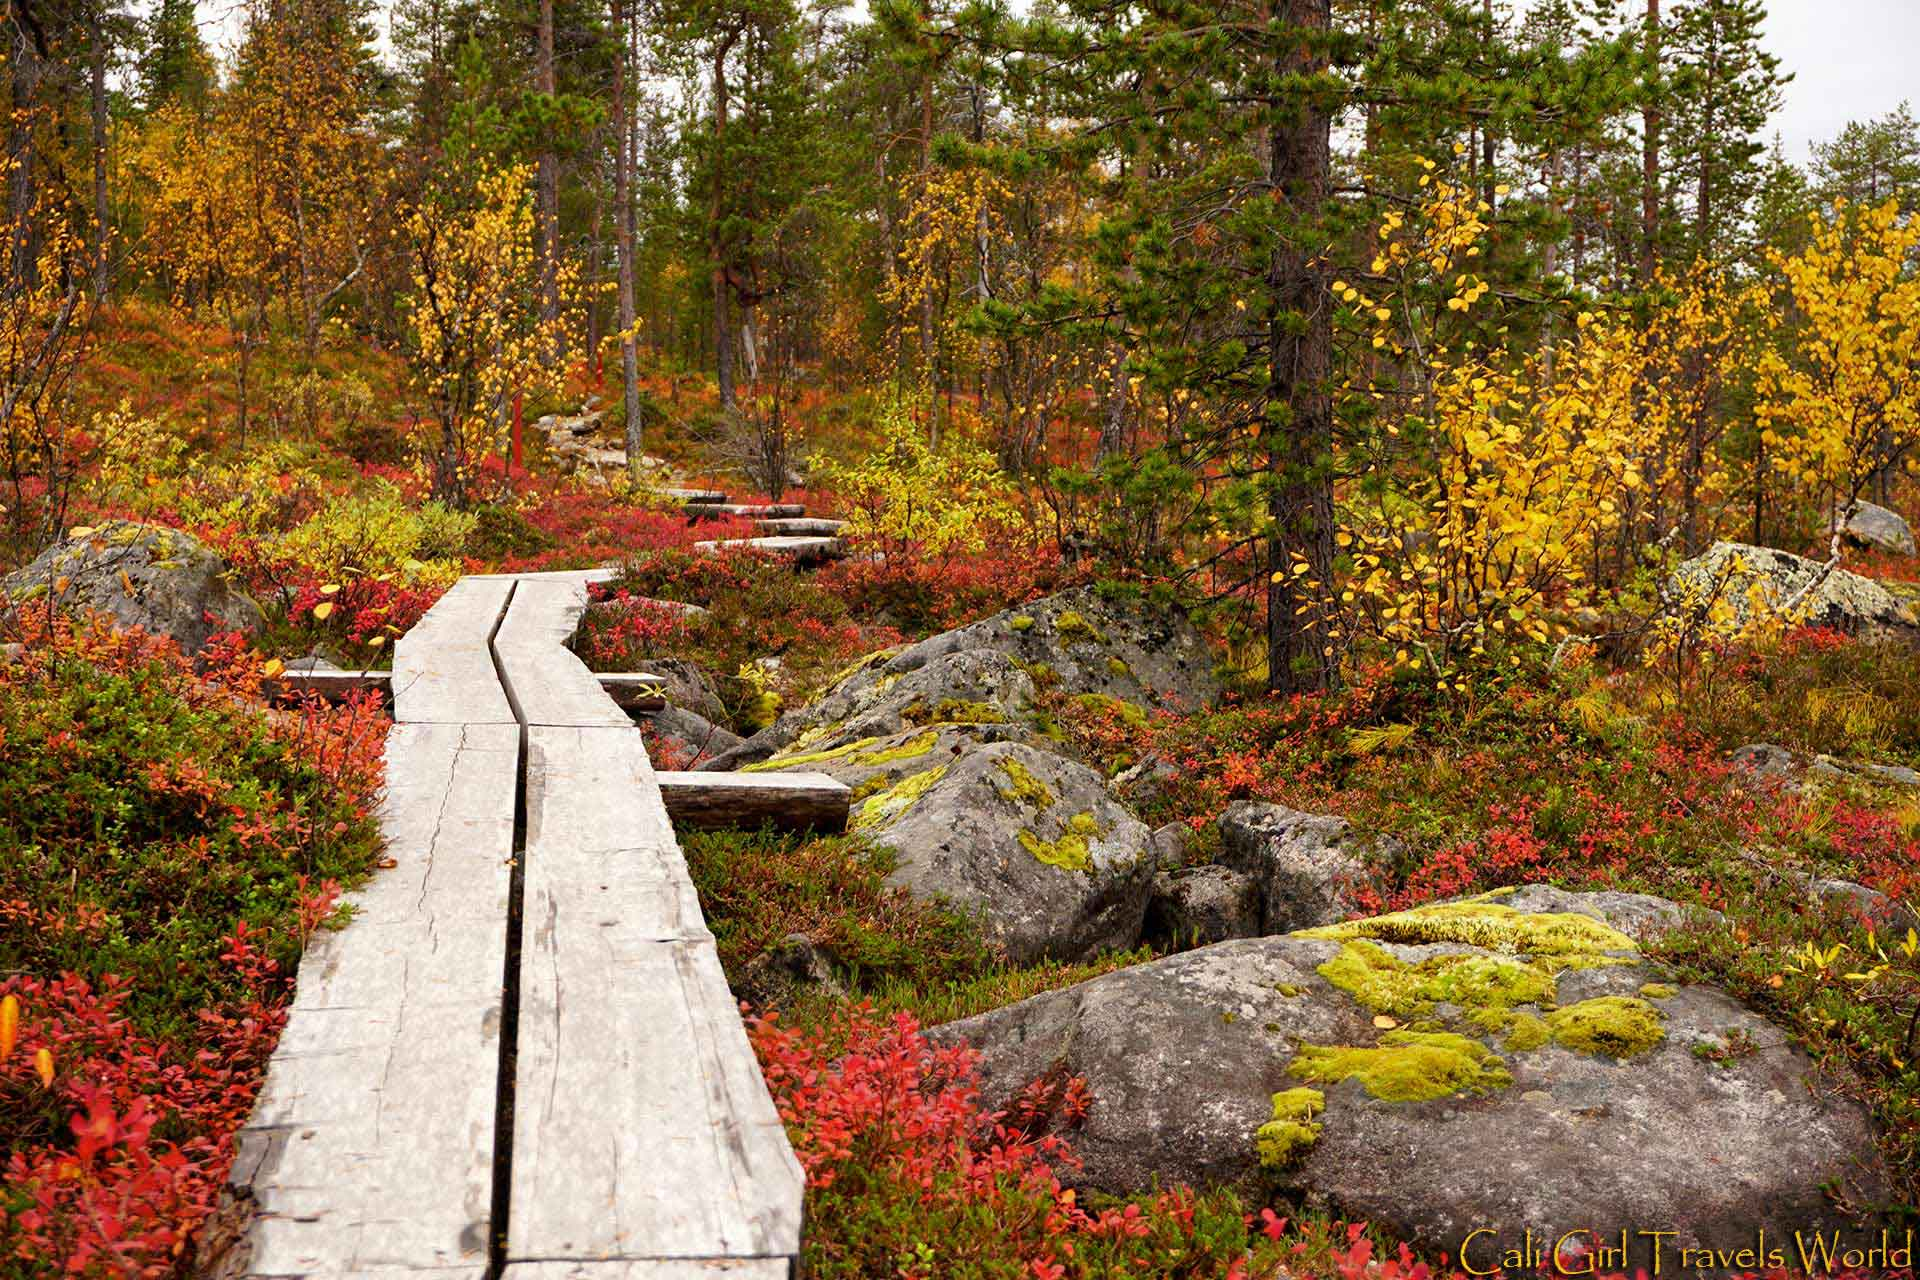 A board path deep in the forest of Lapland, Finland surrounded by autumn colors of yellow, red, and green.